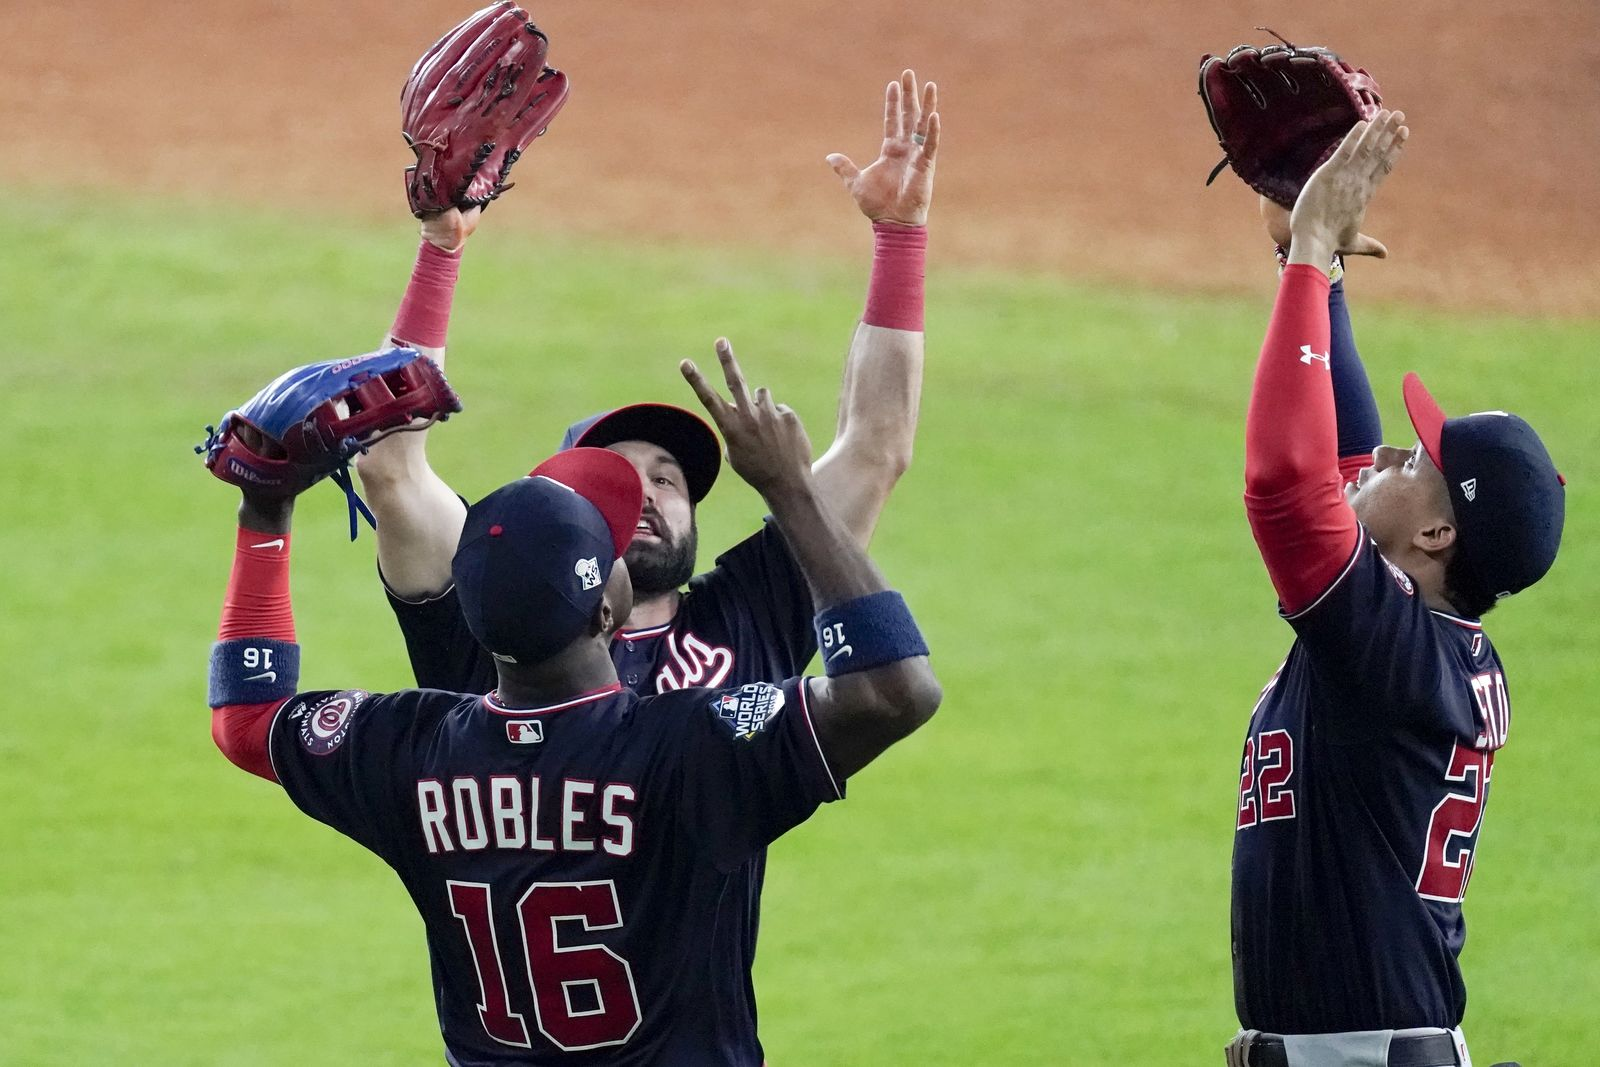 Washington Nationals' Juan Soto, Washington Nationals 2 and Victor Robles celebrate after Game 1 of the baseball World Series against the Houston Astros Tuesday, Oct. 22, 2019, in Houston. The Nationals won 5-4 to take a 1-0 lead in the series. (AP Photo/Eric Gay)